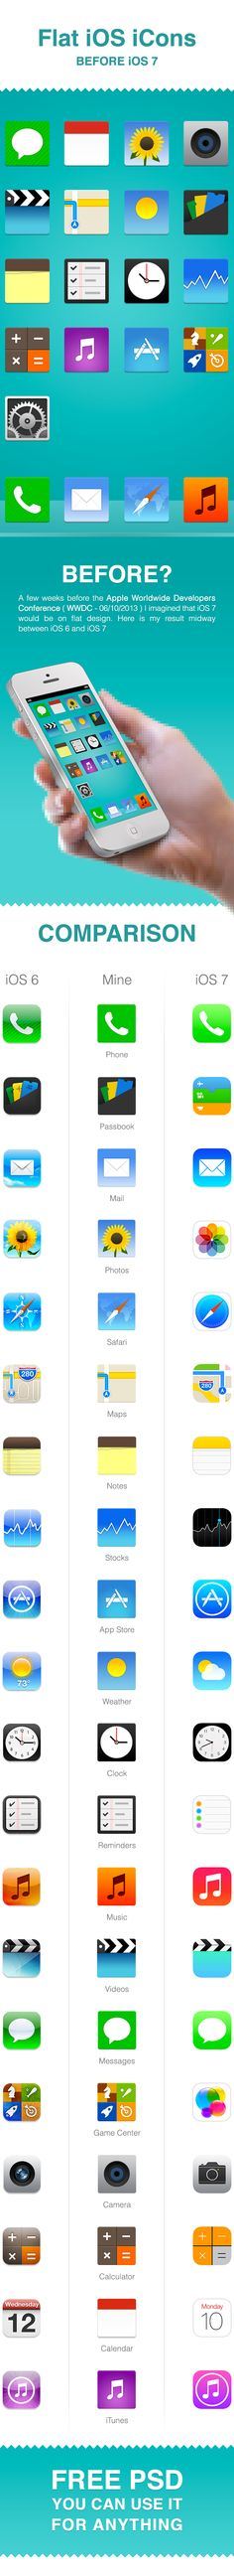 Flat iOS iCons by Giavarini Thomas, via Behance